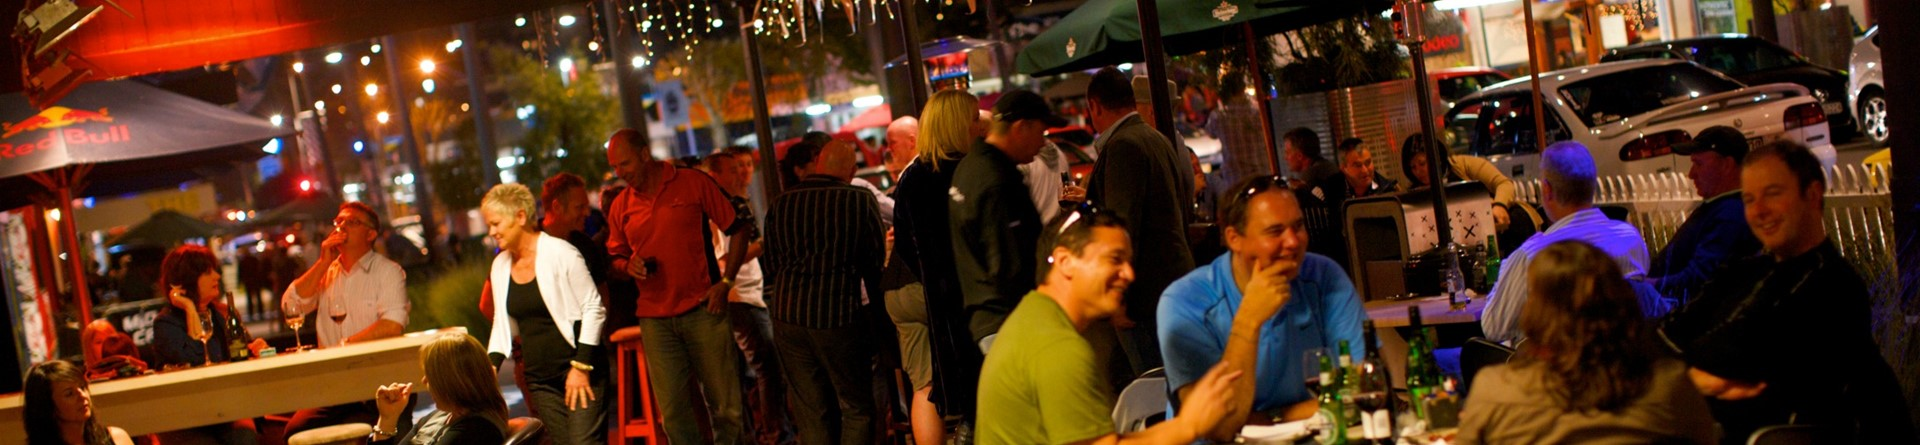 Hamilton City Nightlife, Hamilton, NZ.jpg